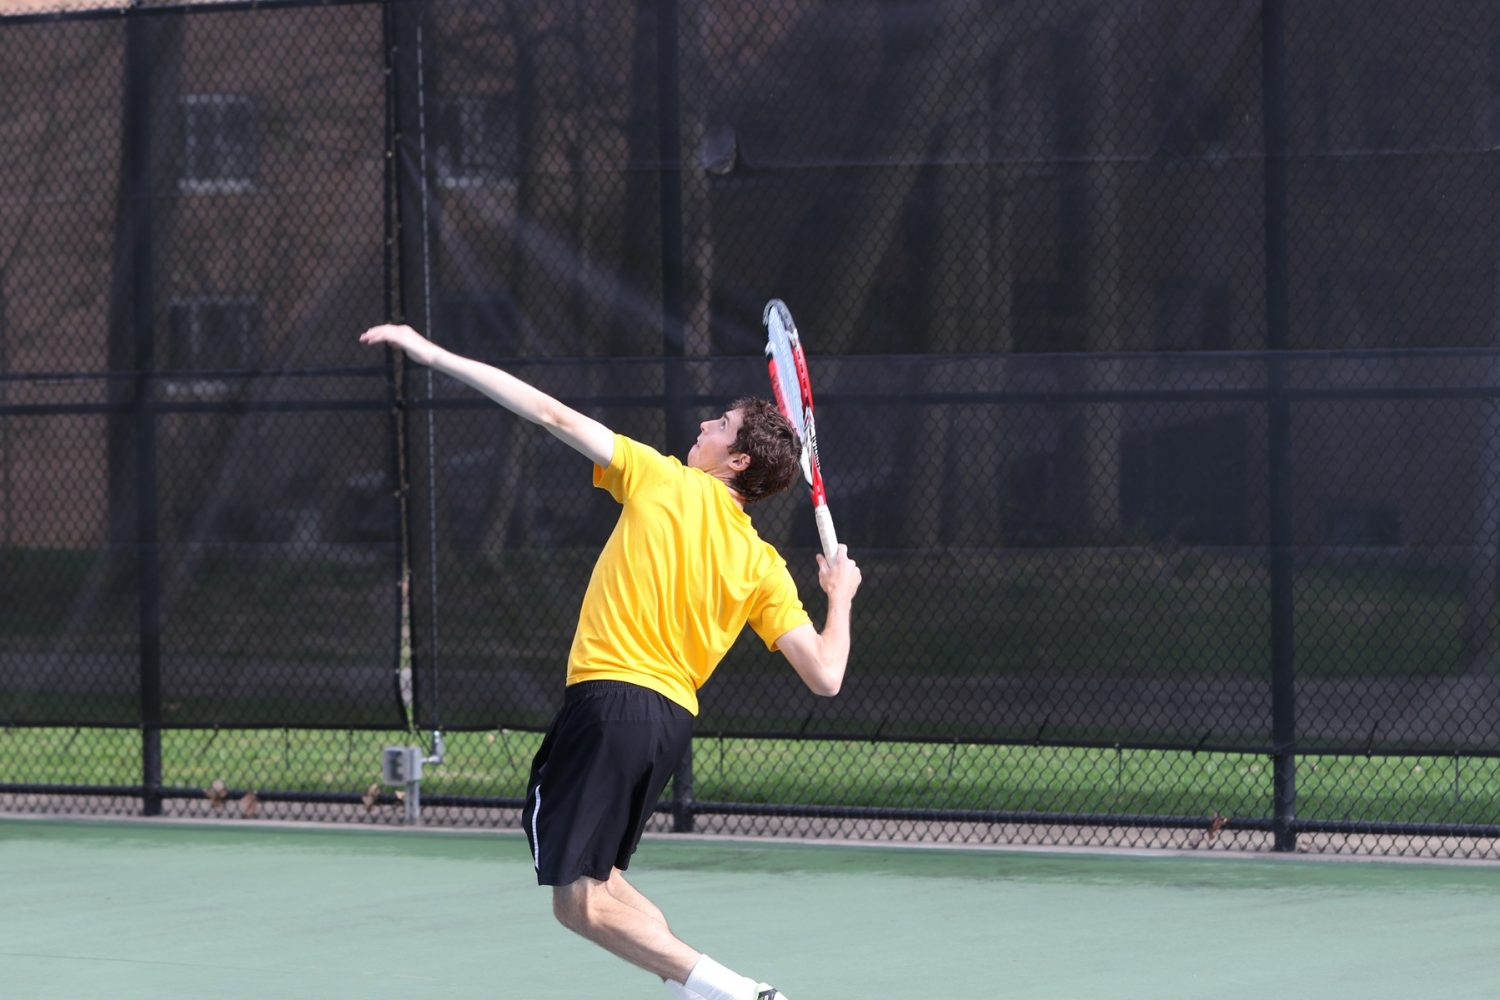 Dave+Brown+serves+up+the+ball+earlier+in+the+season+against+Albion+College.+Photo+courtesy+Calvin+Sports+Information.